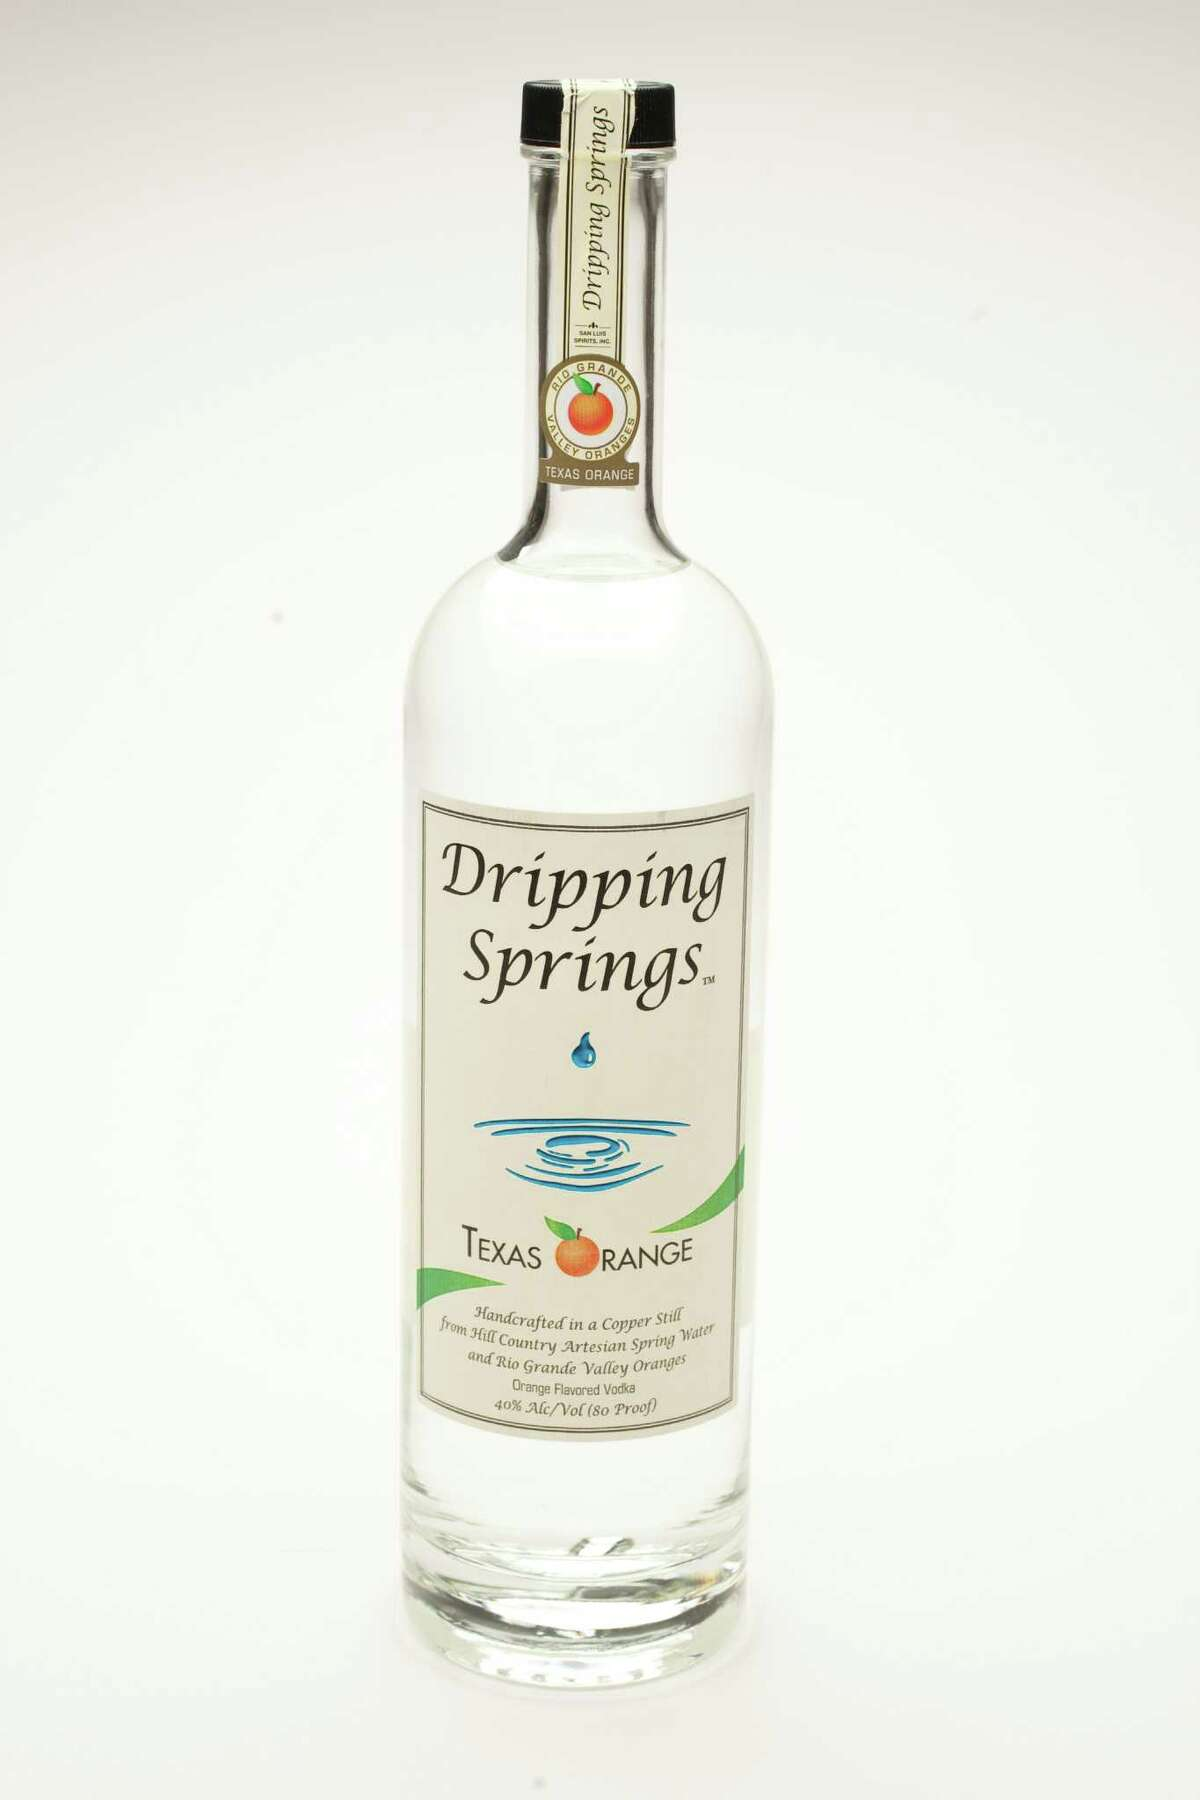 Just west of Austin, the Dripping Springs Distillery creates their signature vodka by mixing it with pure artesian spring water from the Texas Hill Country and filtering it through Swedish-activated charcoal.  The distillery is not yet open for tours.